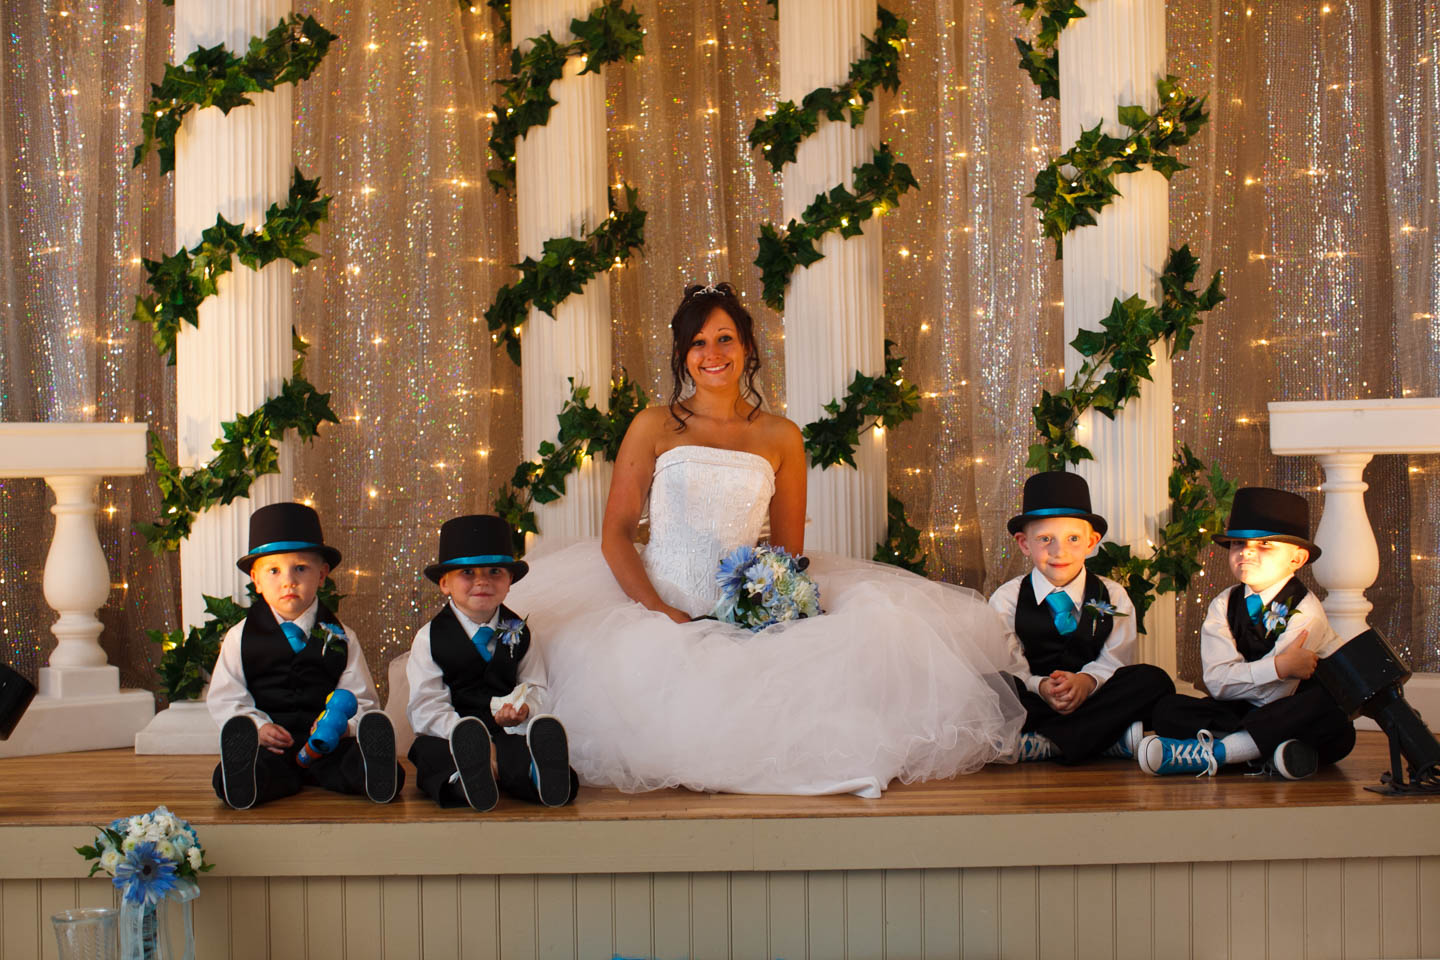 Bride with the little groomsmen